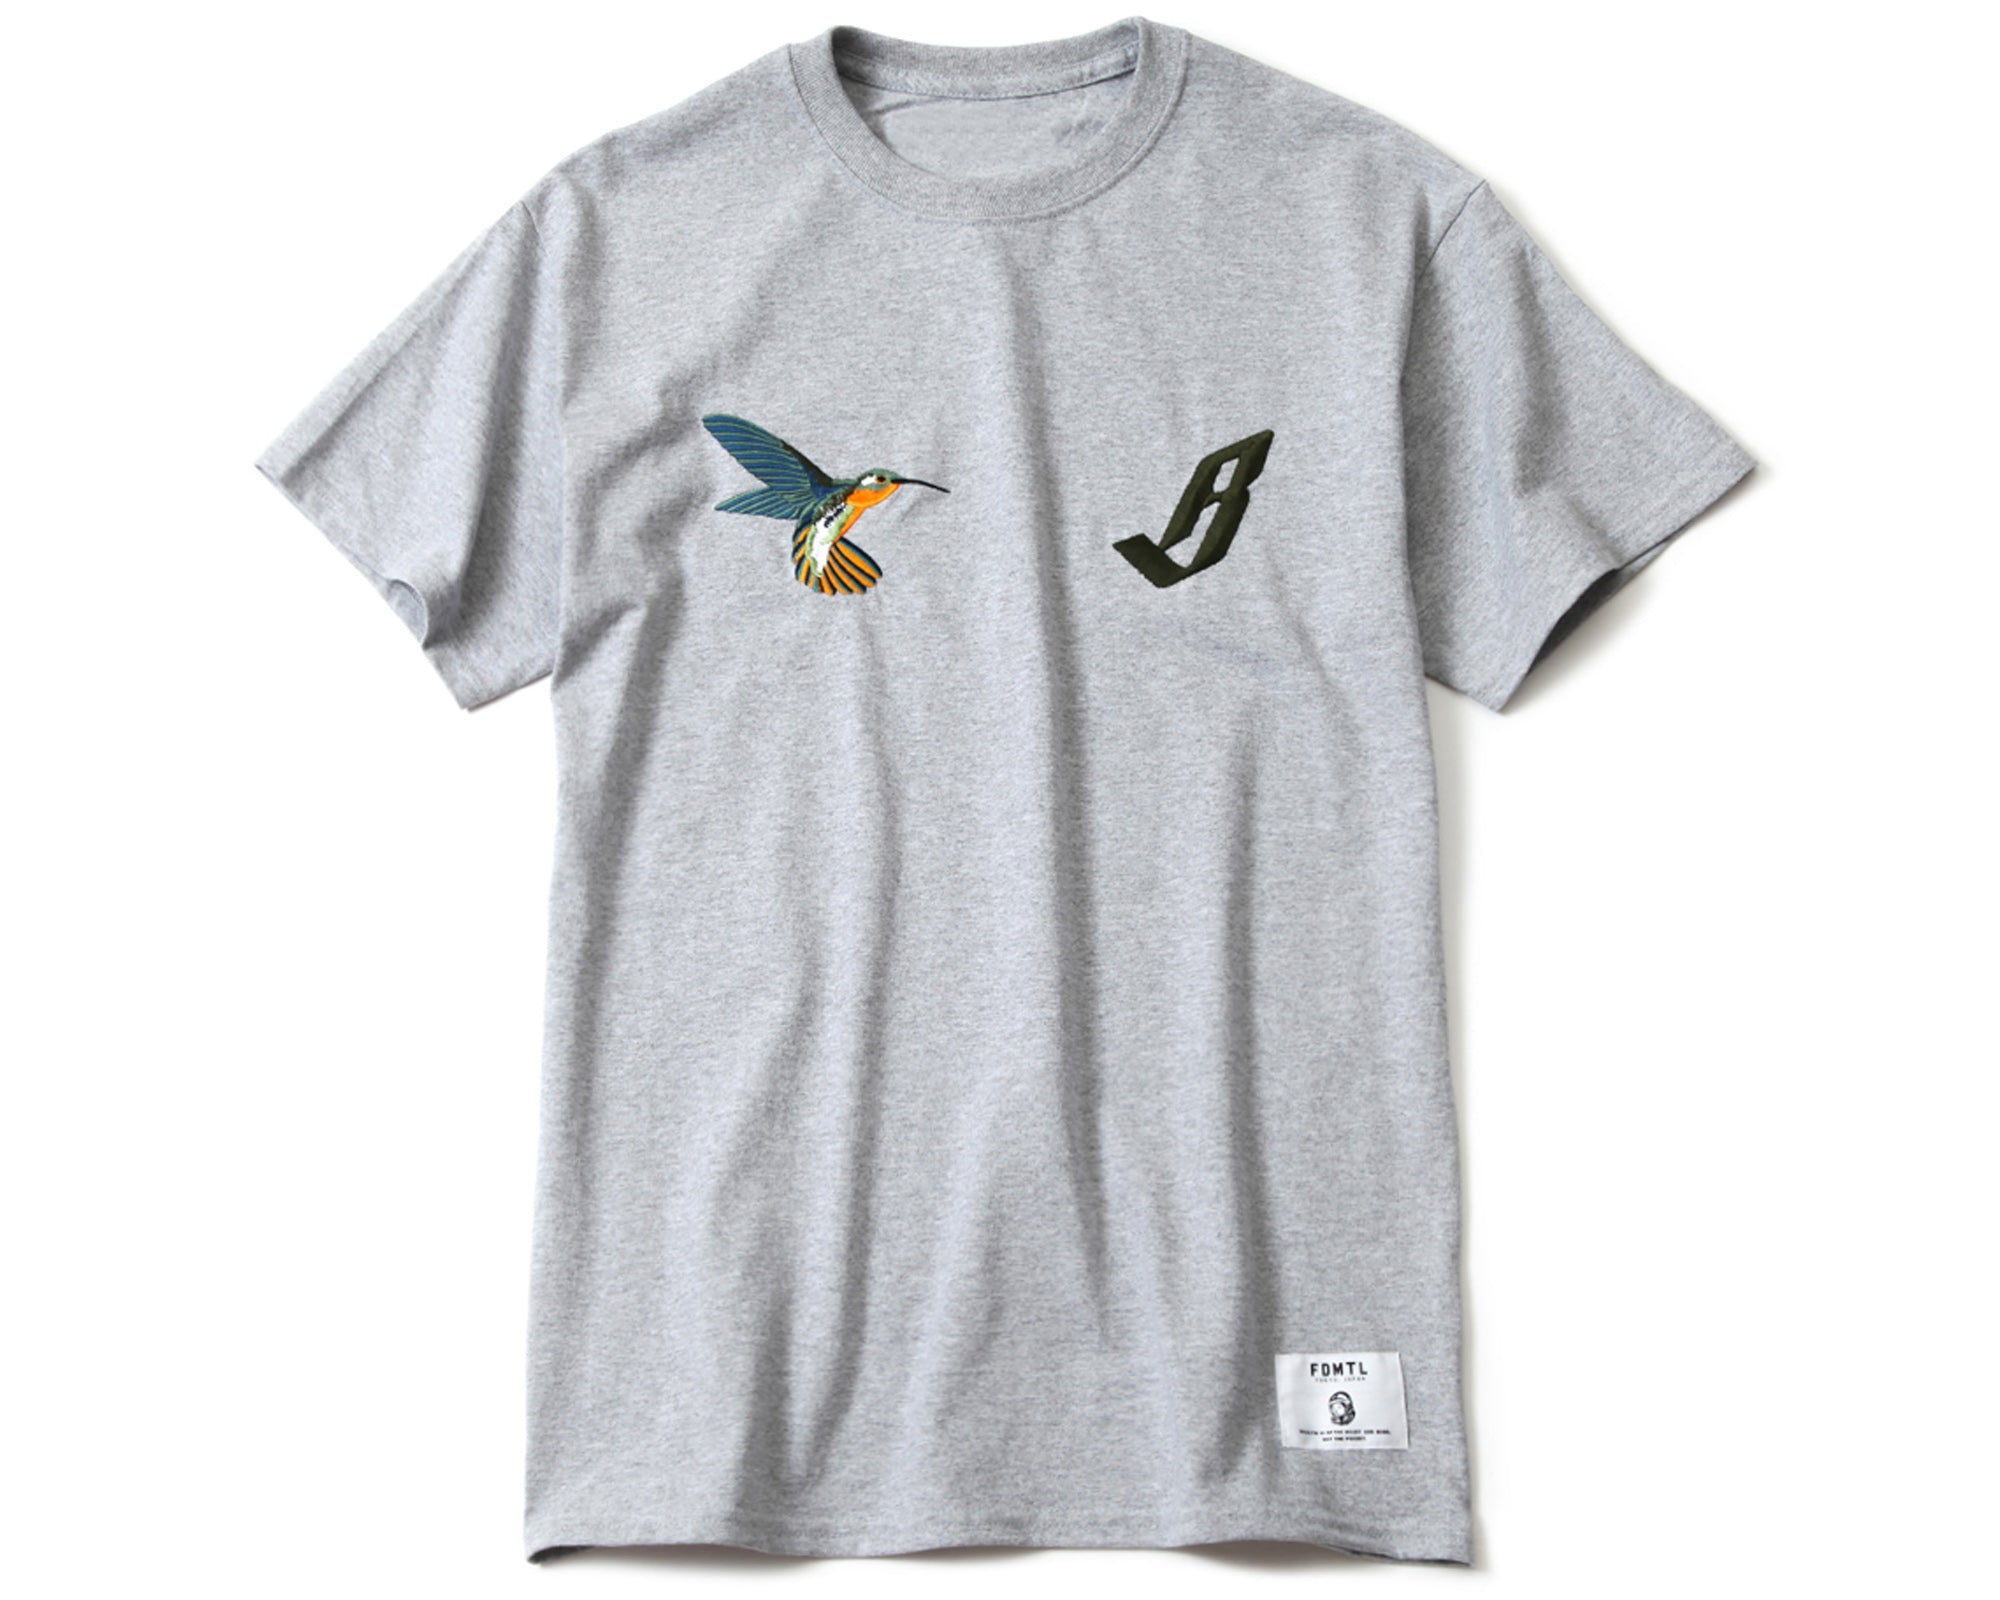 EMBROIDERED T-SHIRT - GREY